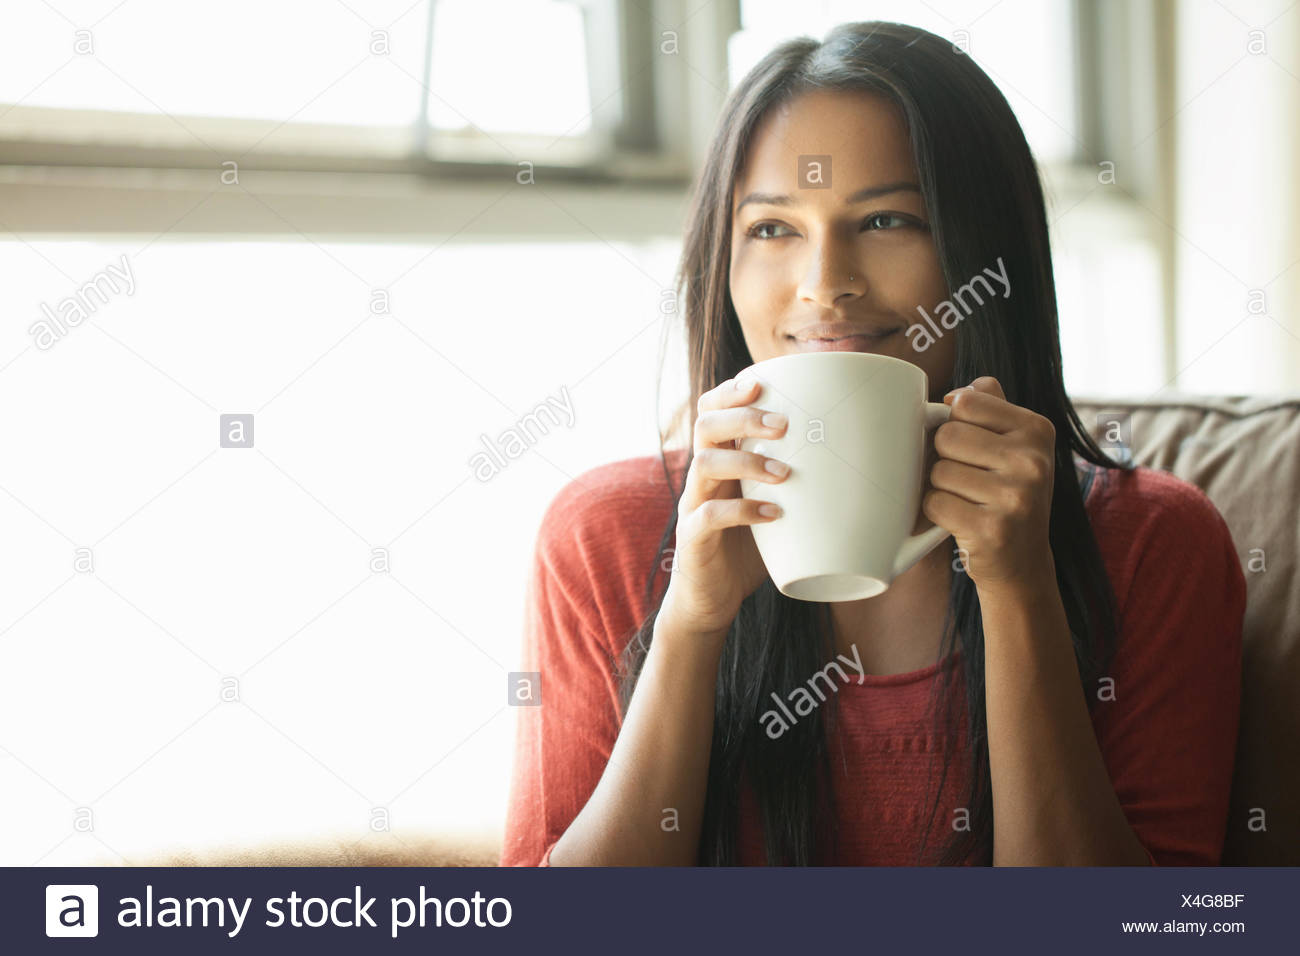 Woman having coffee at home Photo Stock